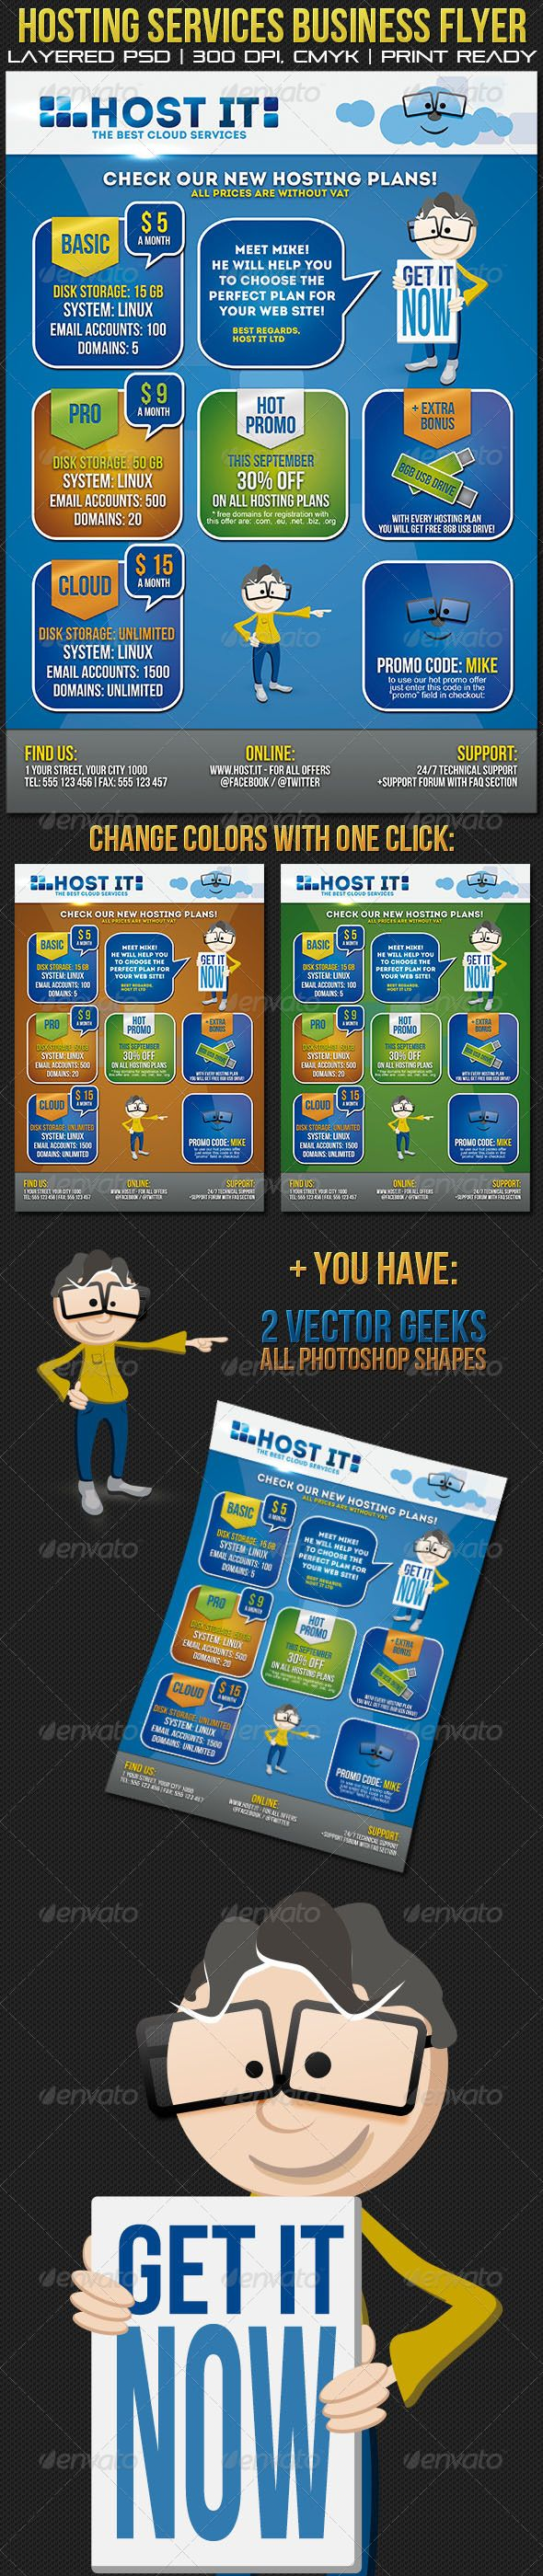 Hosting Services Business Flyer/ Poster - GraphicRiver Item for Sale